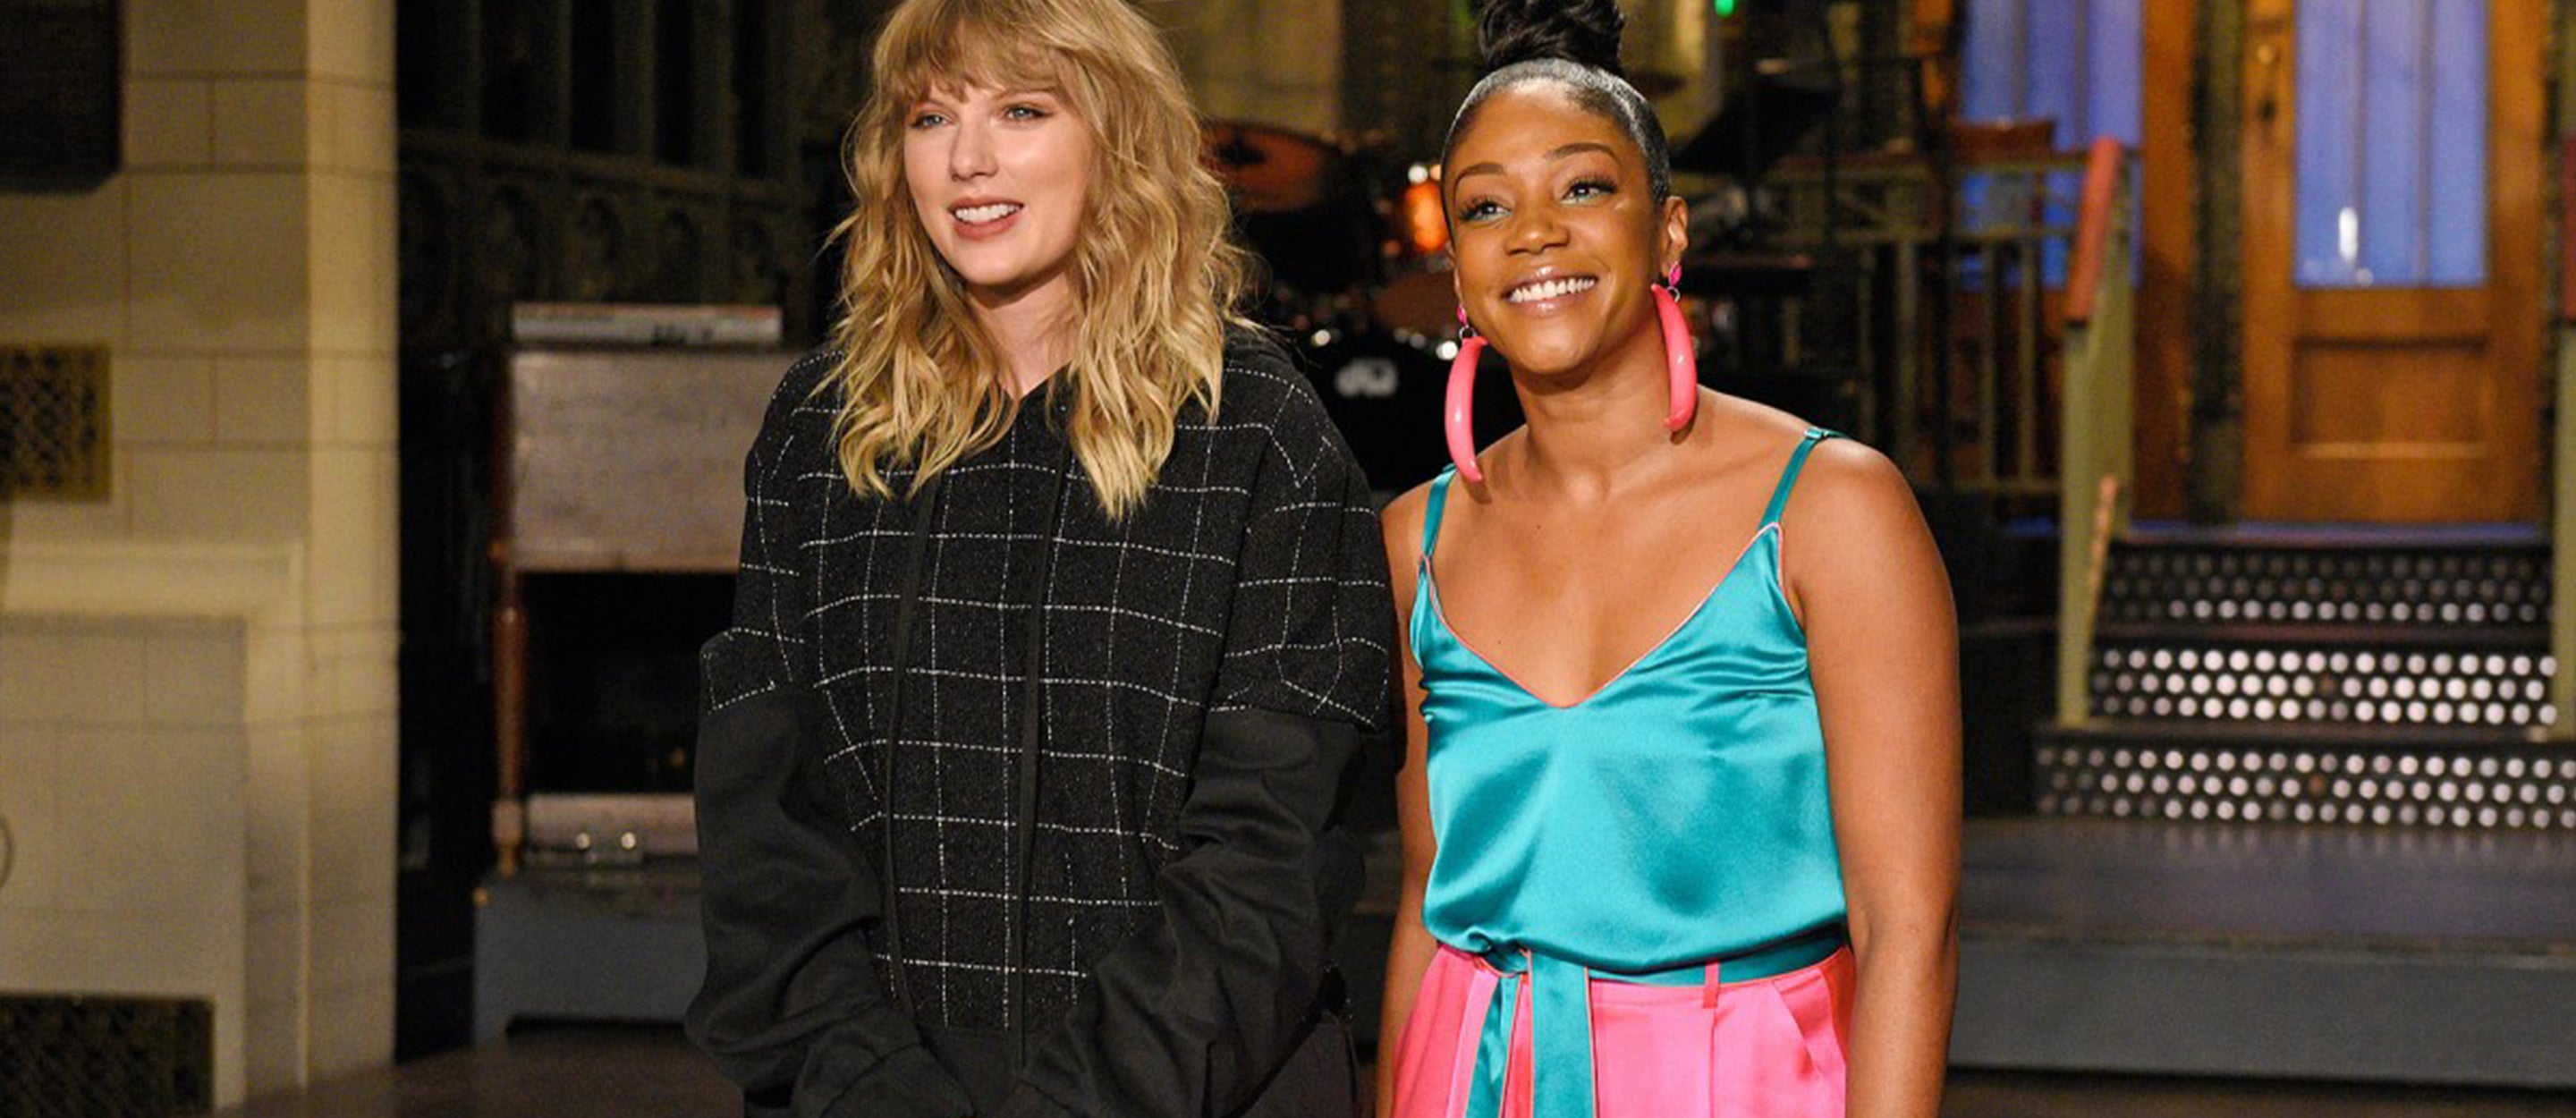 Taylor Swift on Saturday Night Live